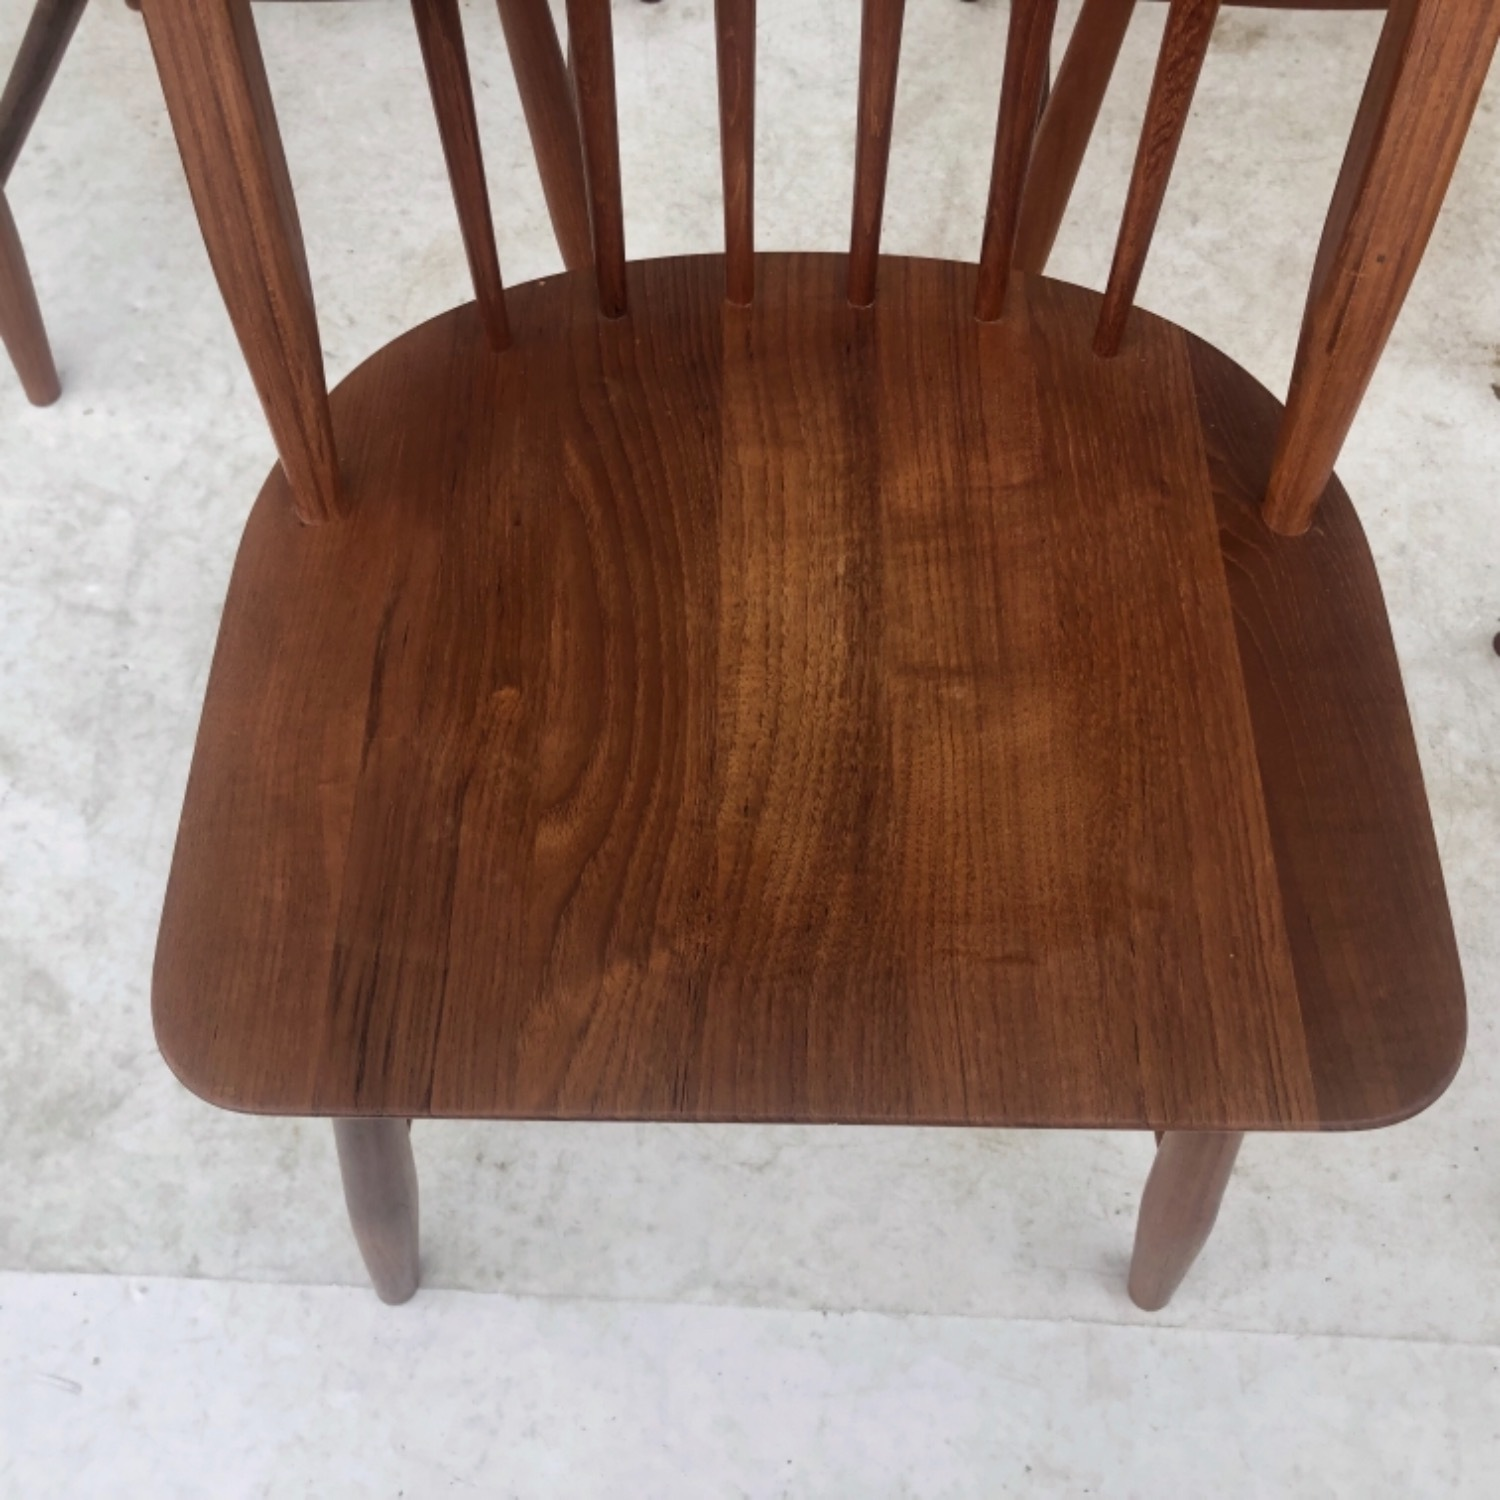 Vintage Modern Dining Set w/ Six Chairs - image-16